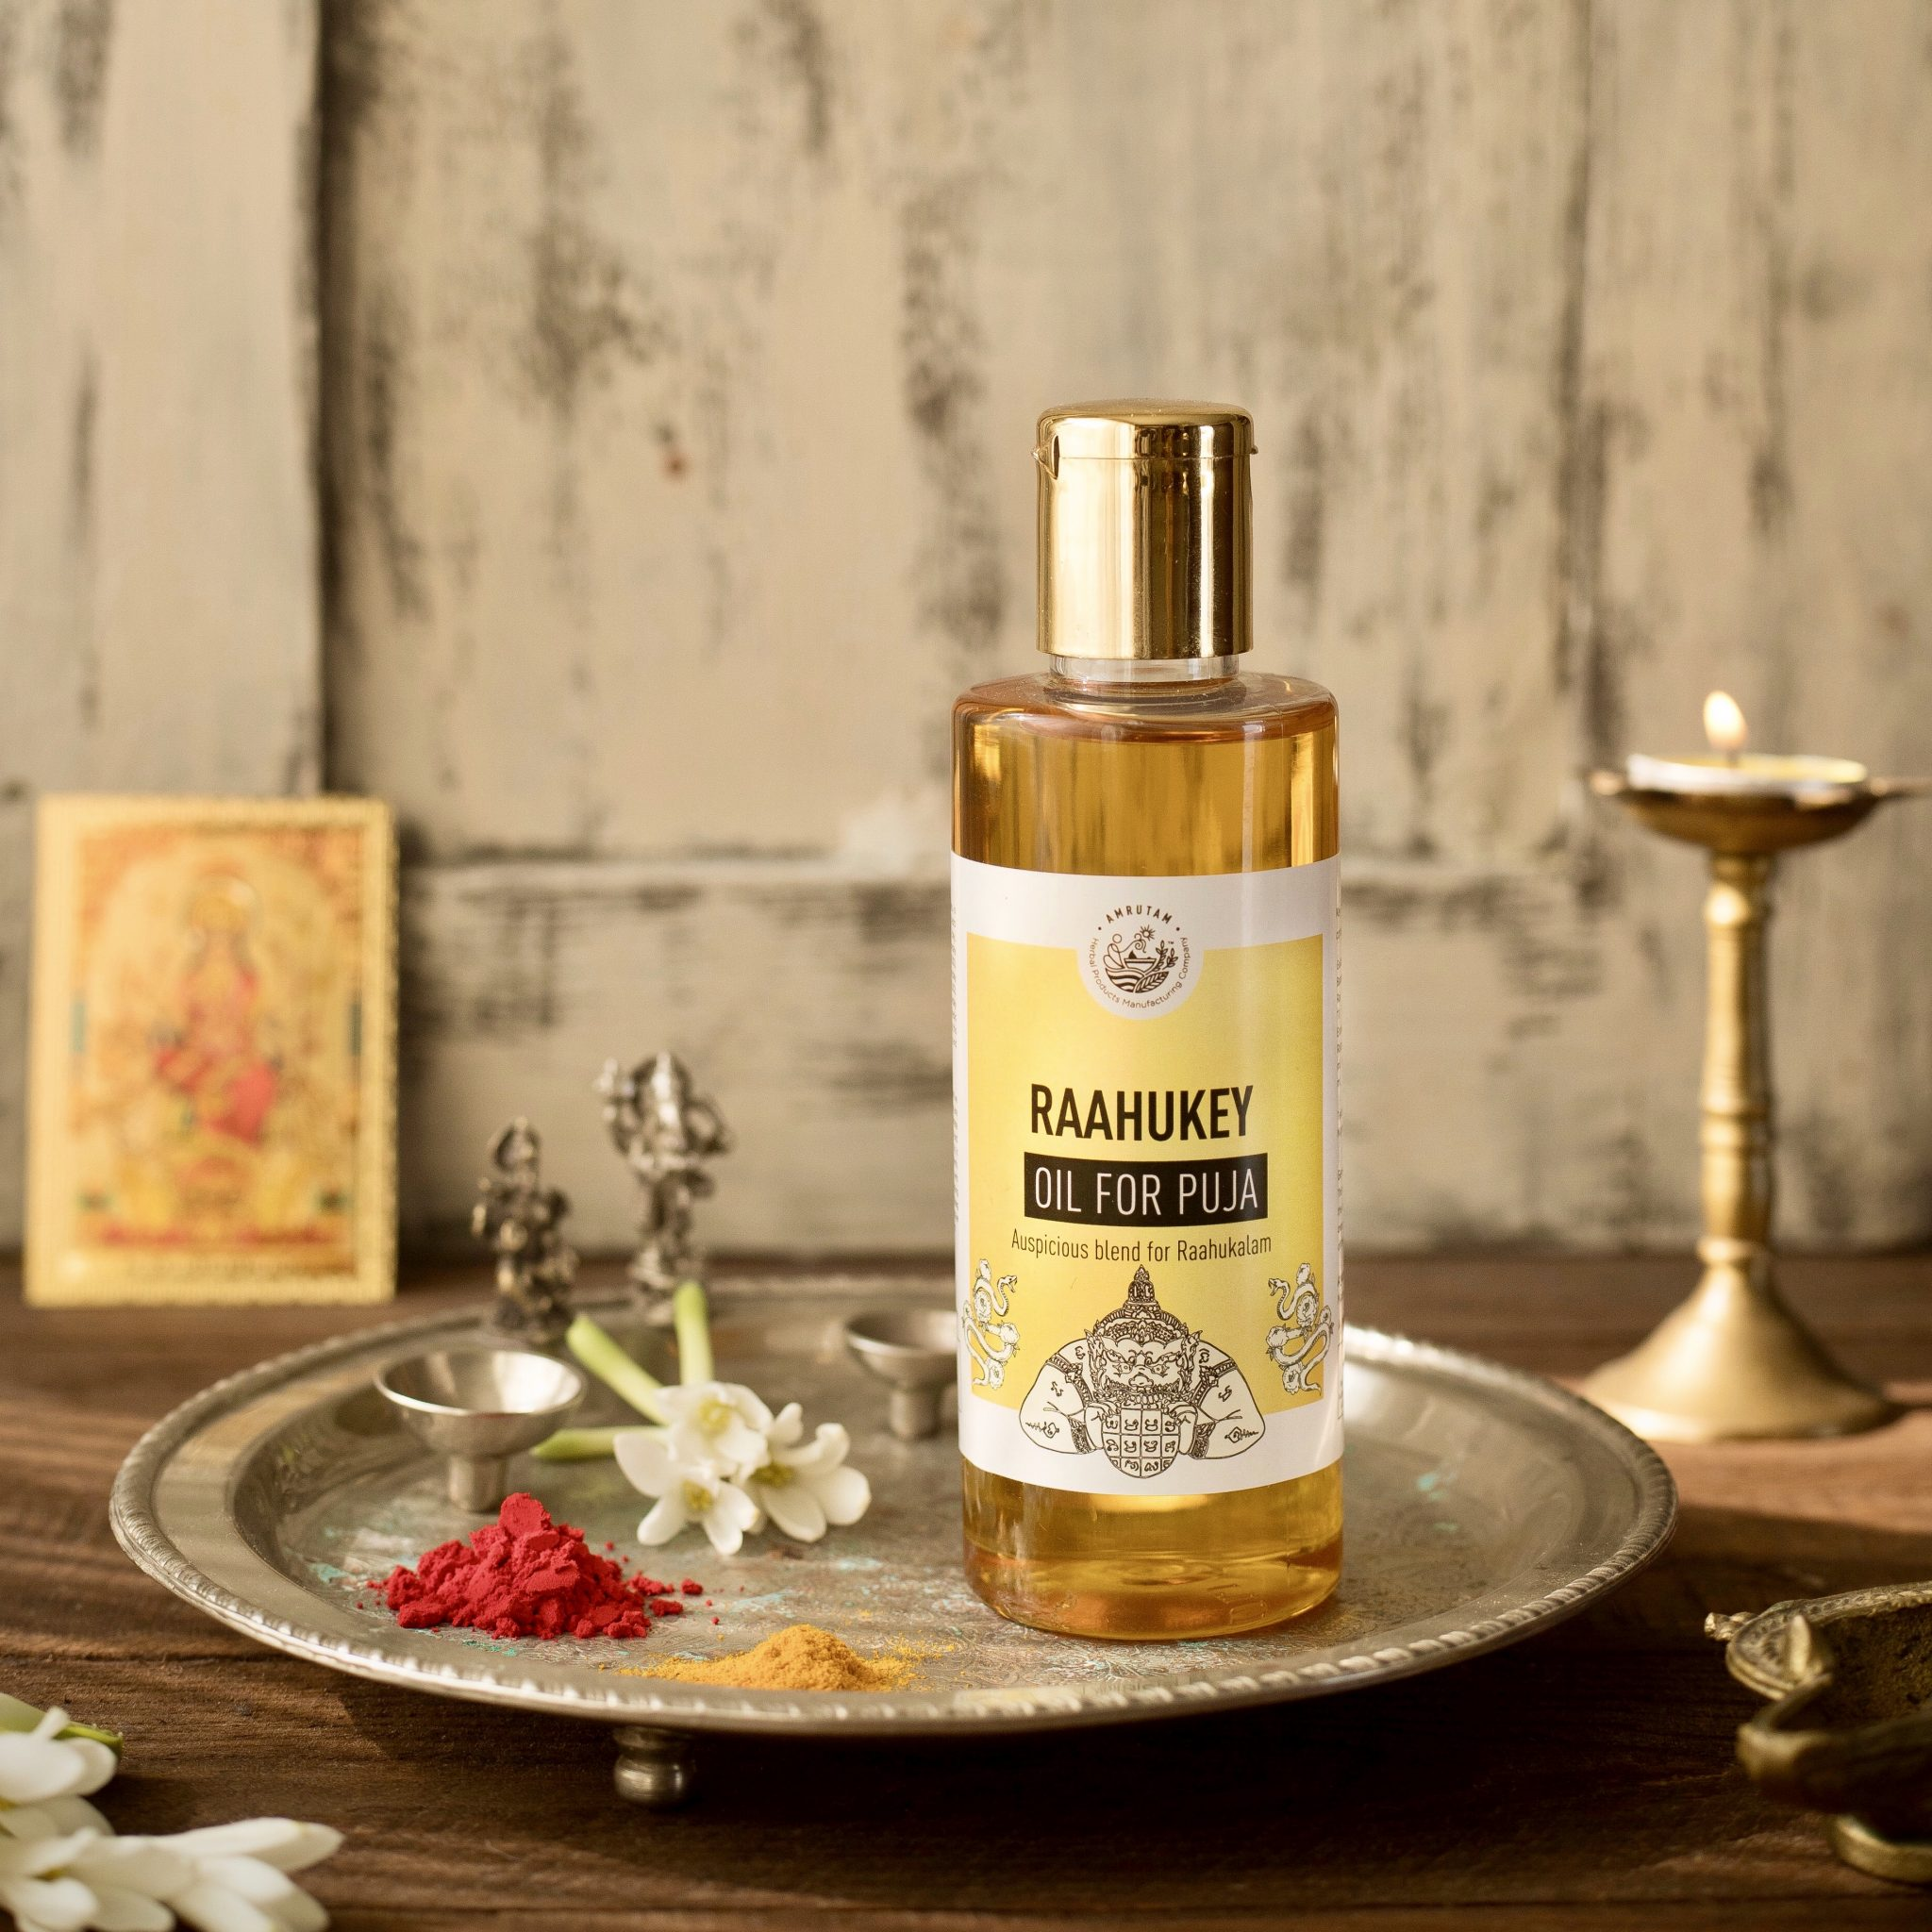 Raahukey Oil for Puja - Auspicious Blend for Raahukalam